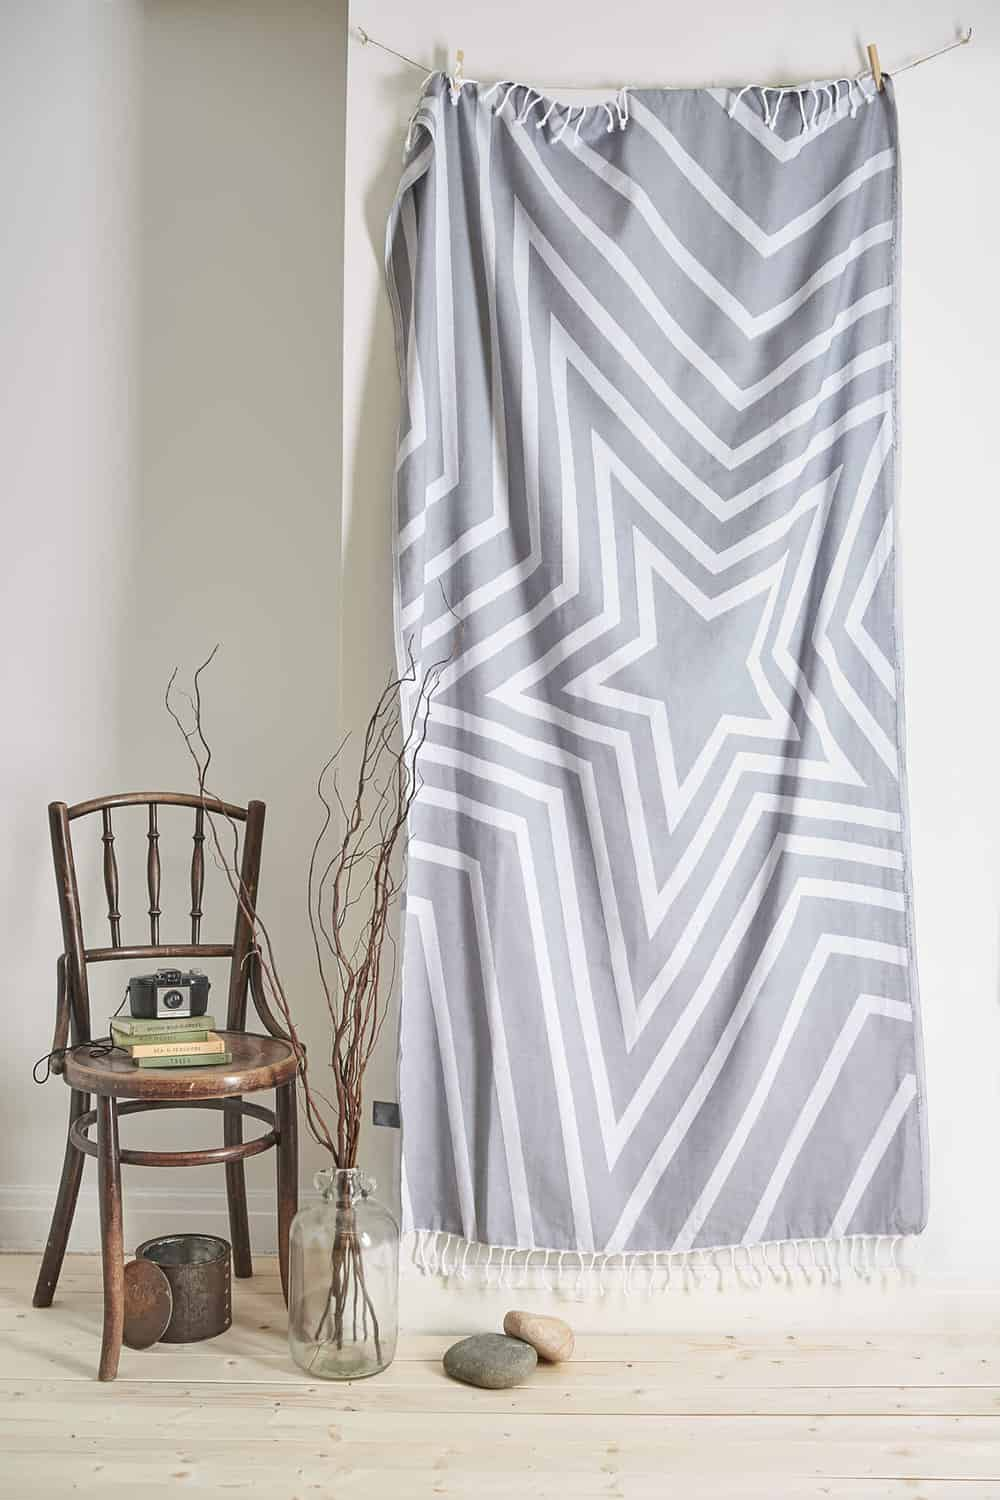 Studio product photograph naturally lit showing a throw hung and styled with vintage props